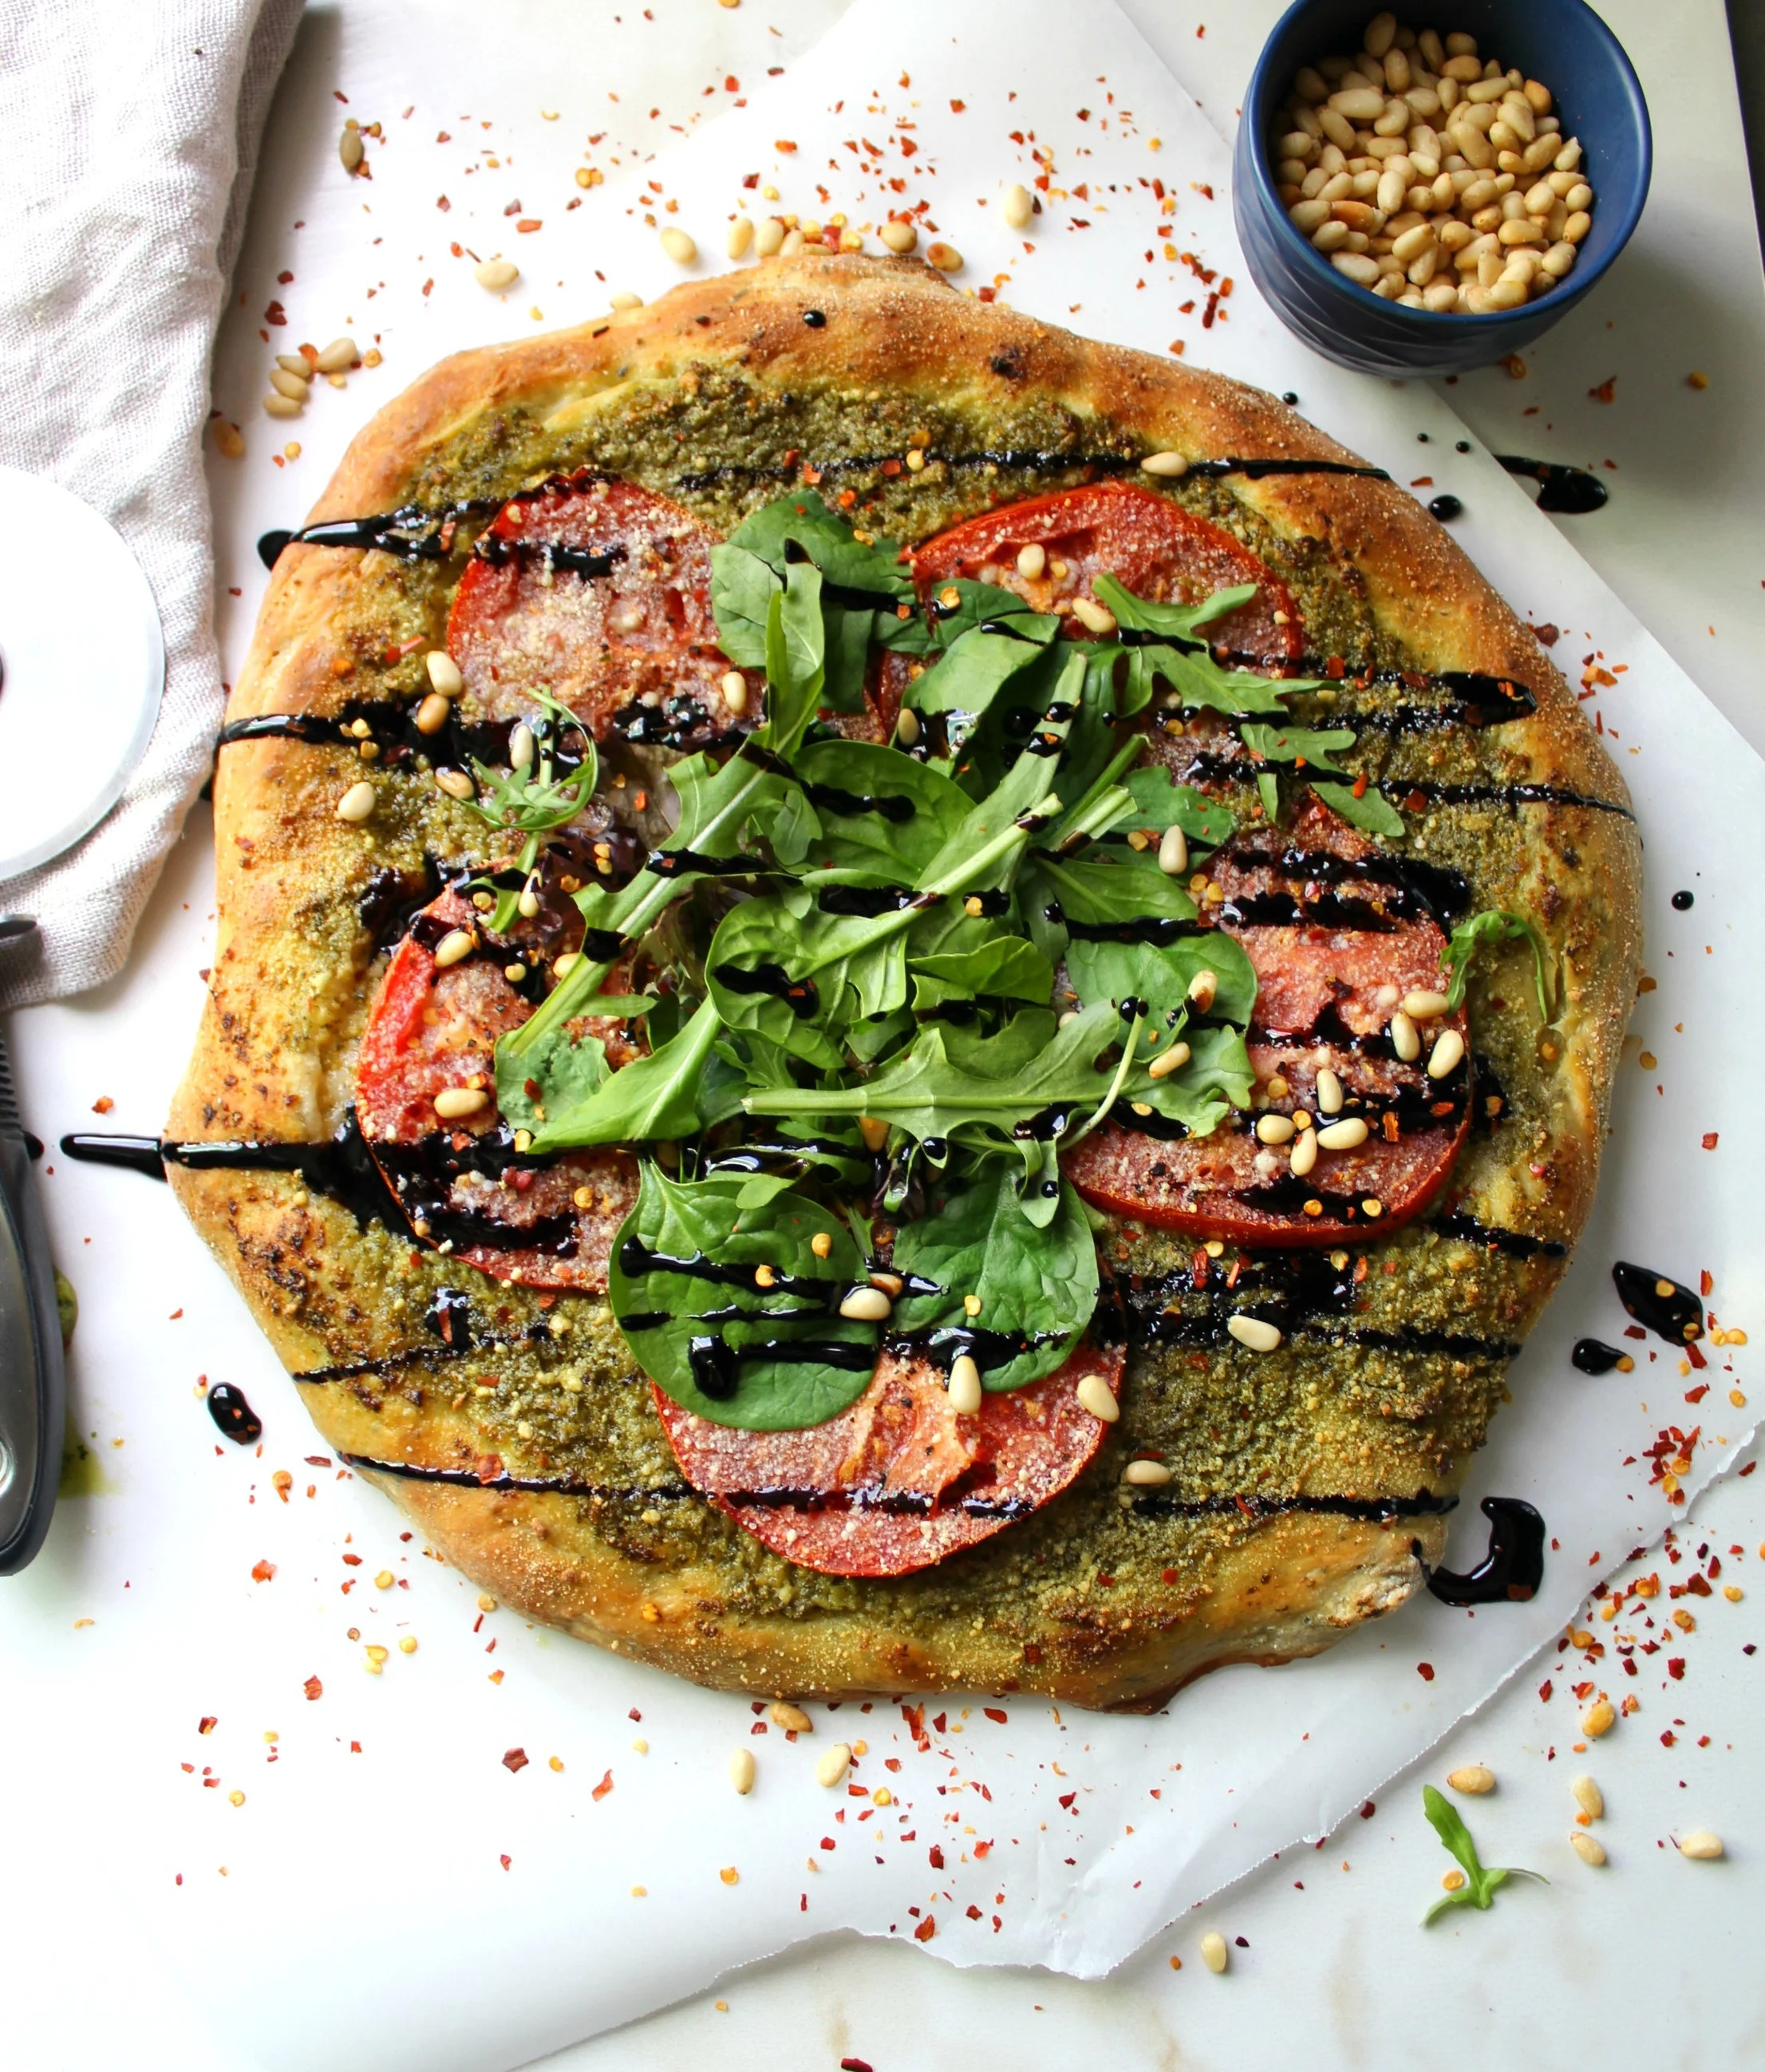 Vegan Pesto Pizza With Balsamic Glaze This Savory Vegan